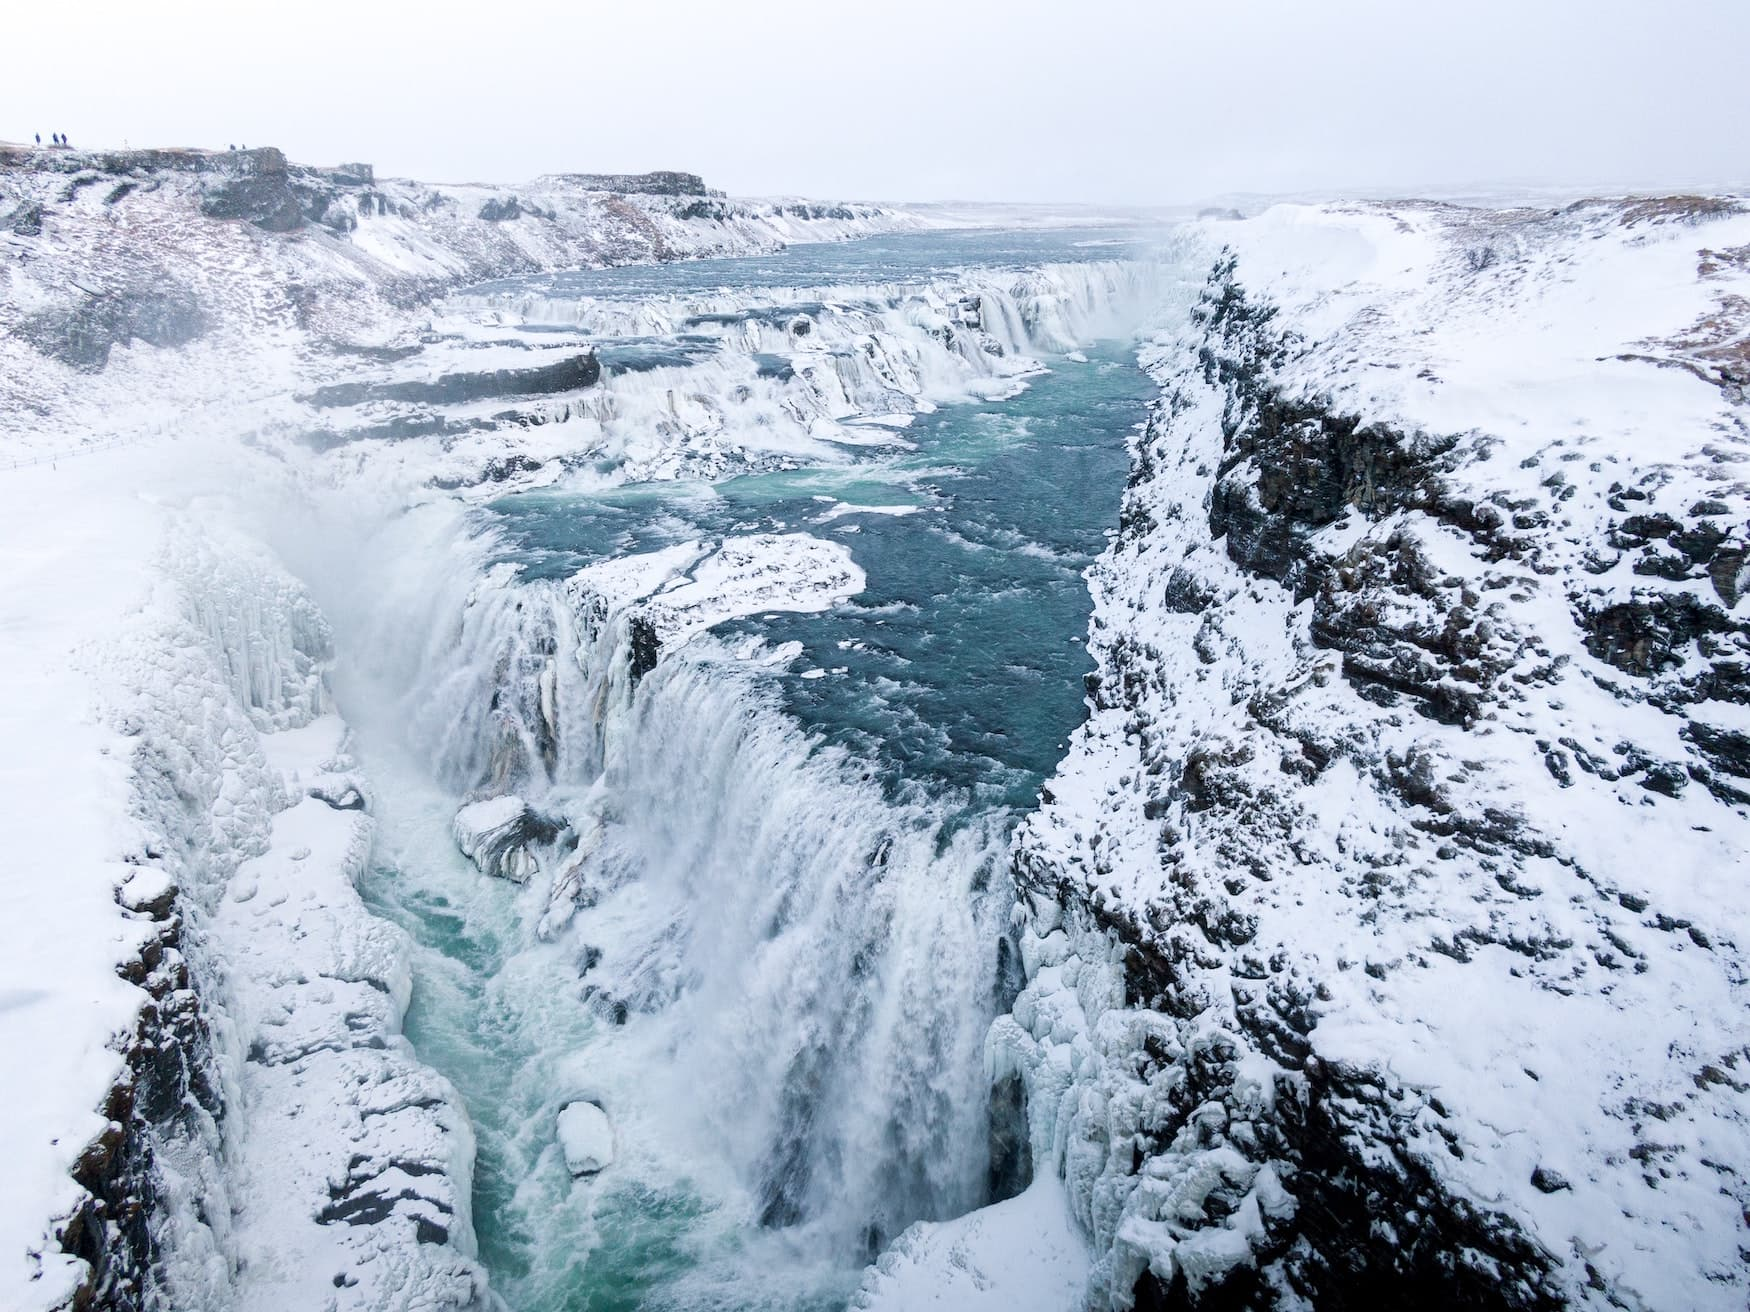 Gulfoss-Wasserfall im Winter